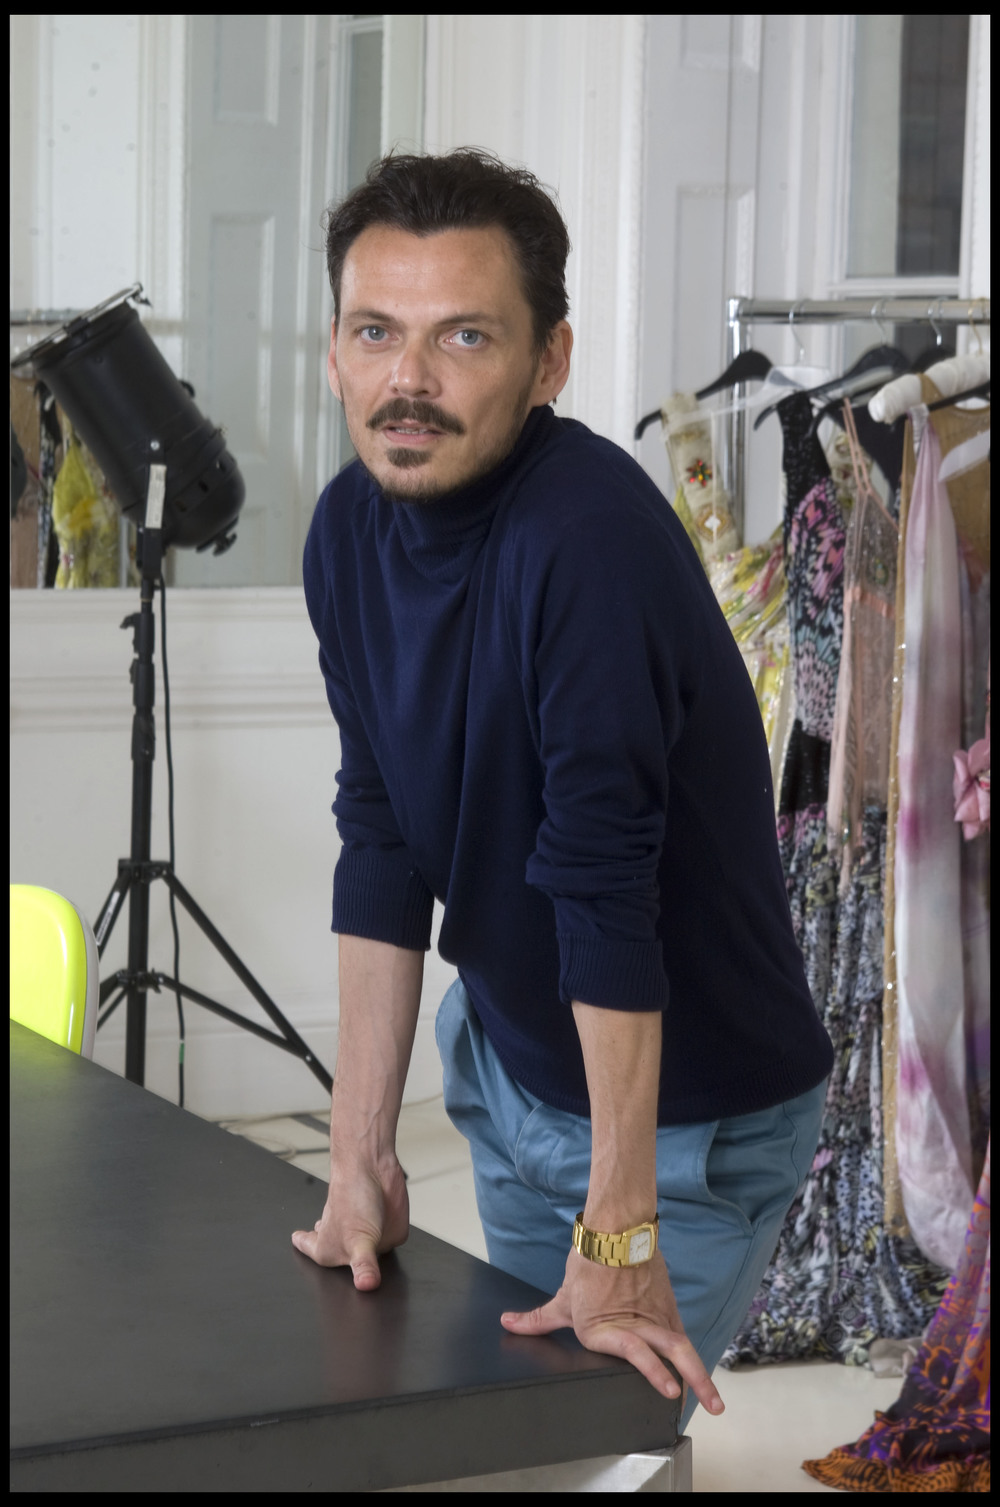 Matthew Williamson, fashion designer